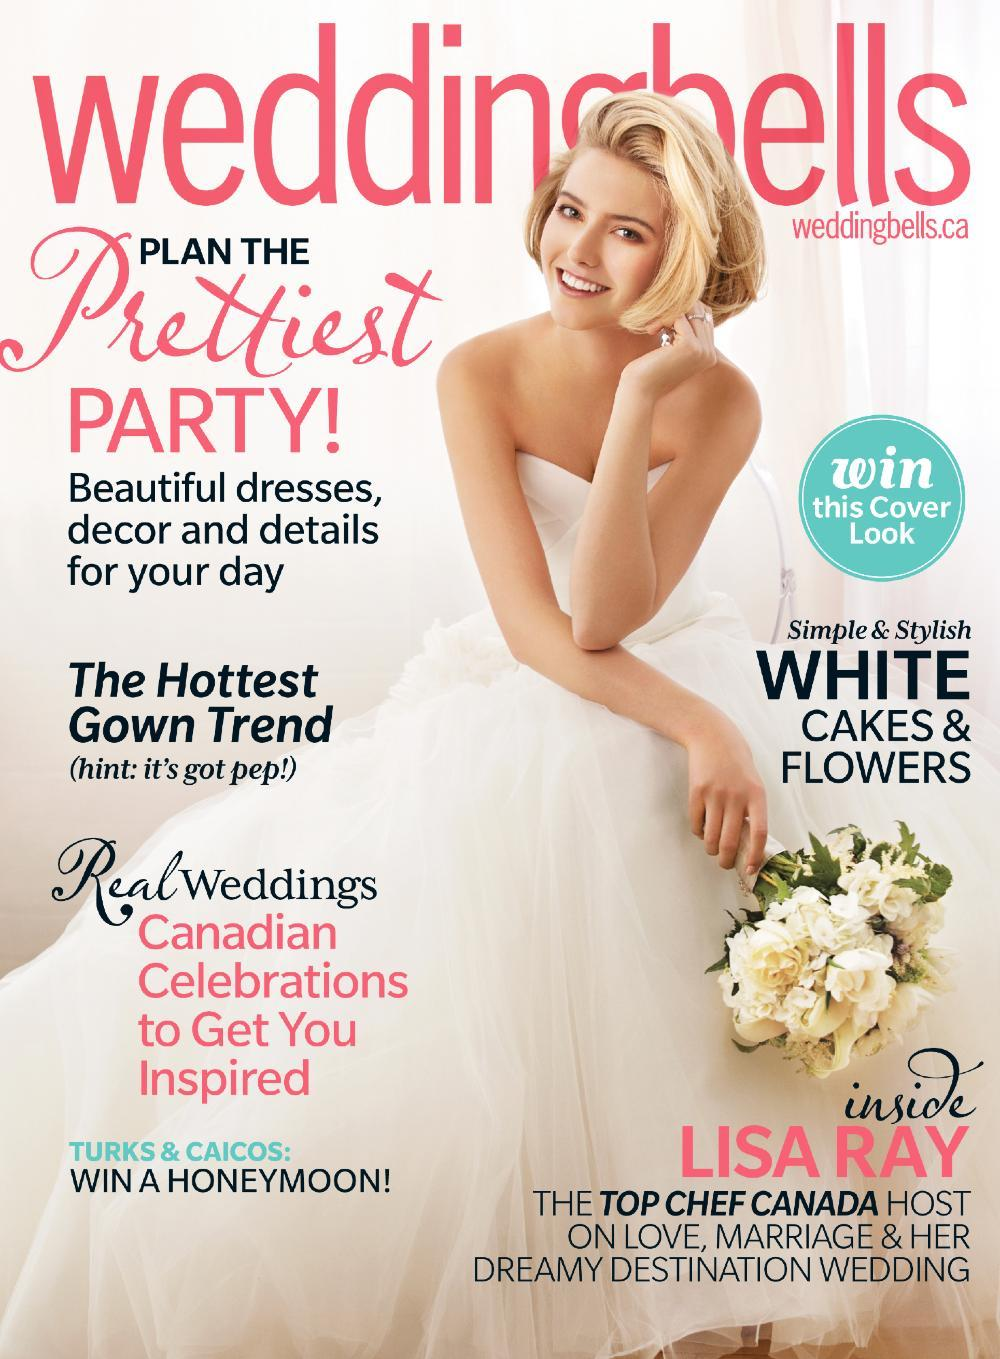 Botany Feature: weddingbells magazine - Botany Bridal Bouquet on Fall/Winter 2012 cover